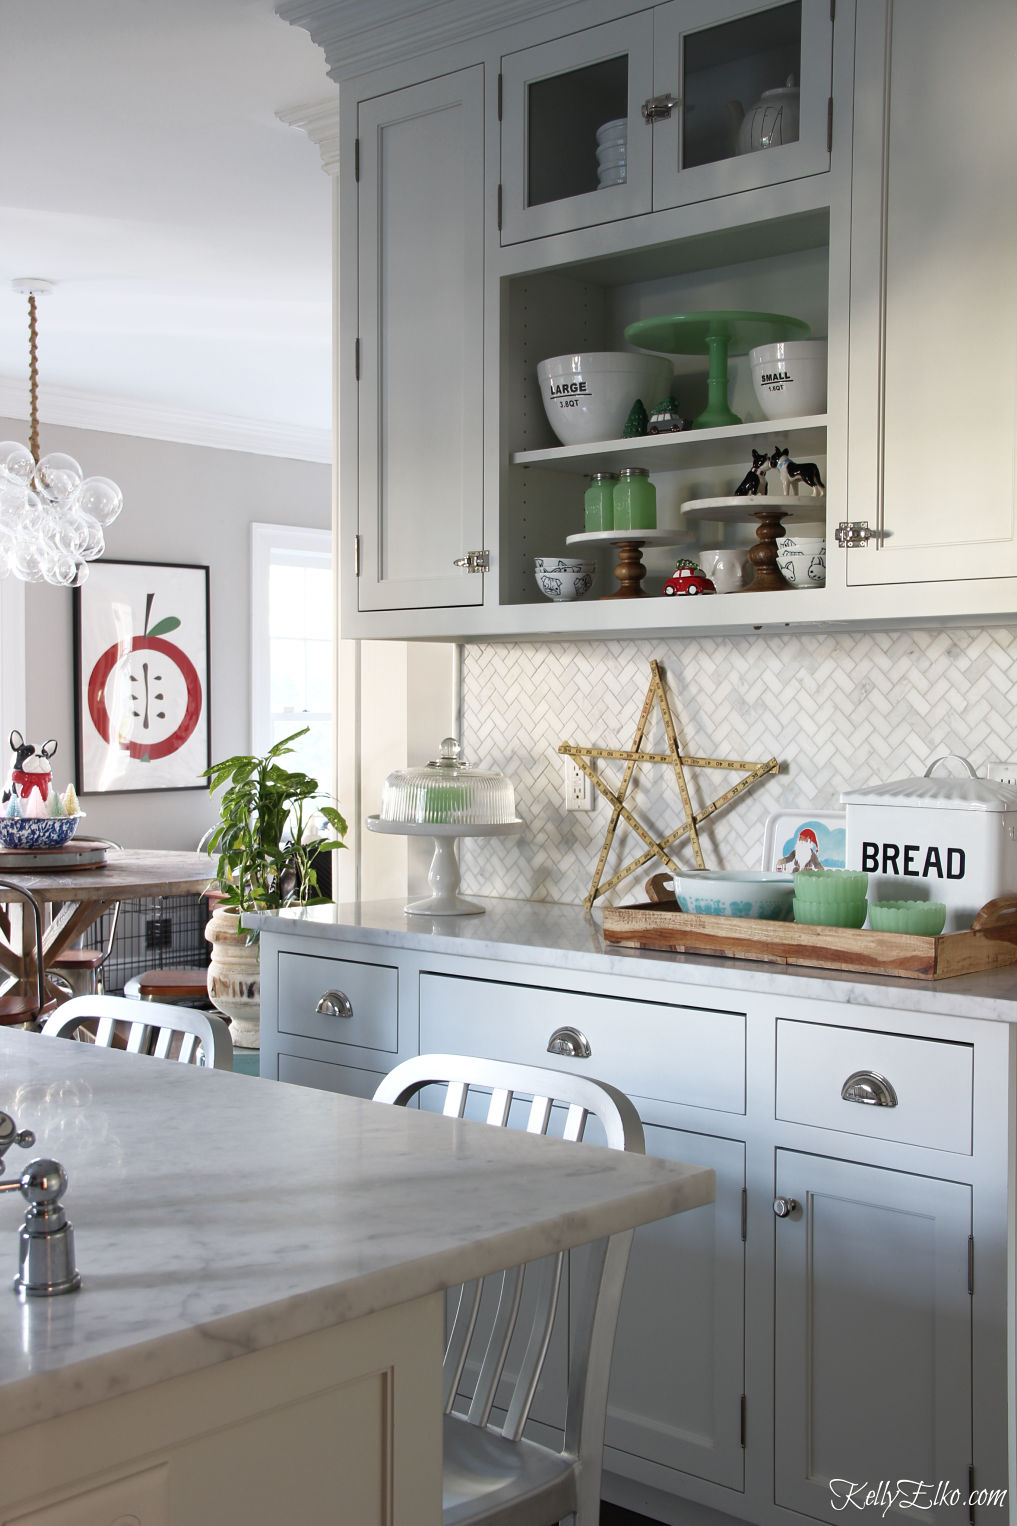 Love the open shelves in this Christmas kitchen kellyelko.com #whitekitchen #openshelves #farmhousekitchen #christmaskitchen #christmasdecor #christmasdecorations #vintagechristmas